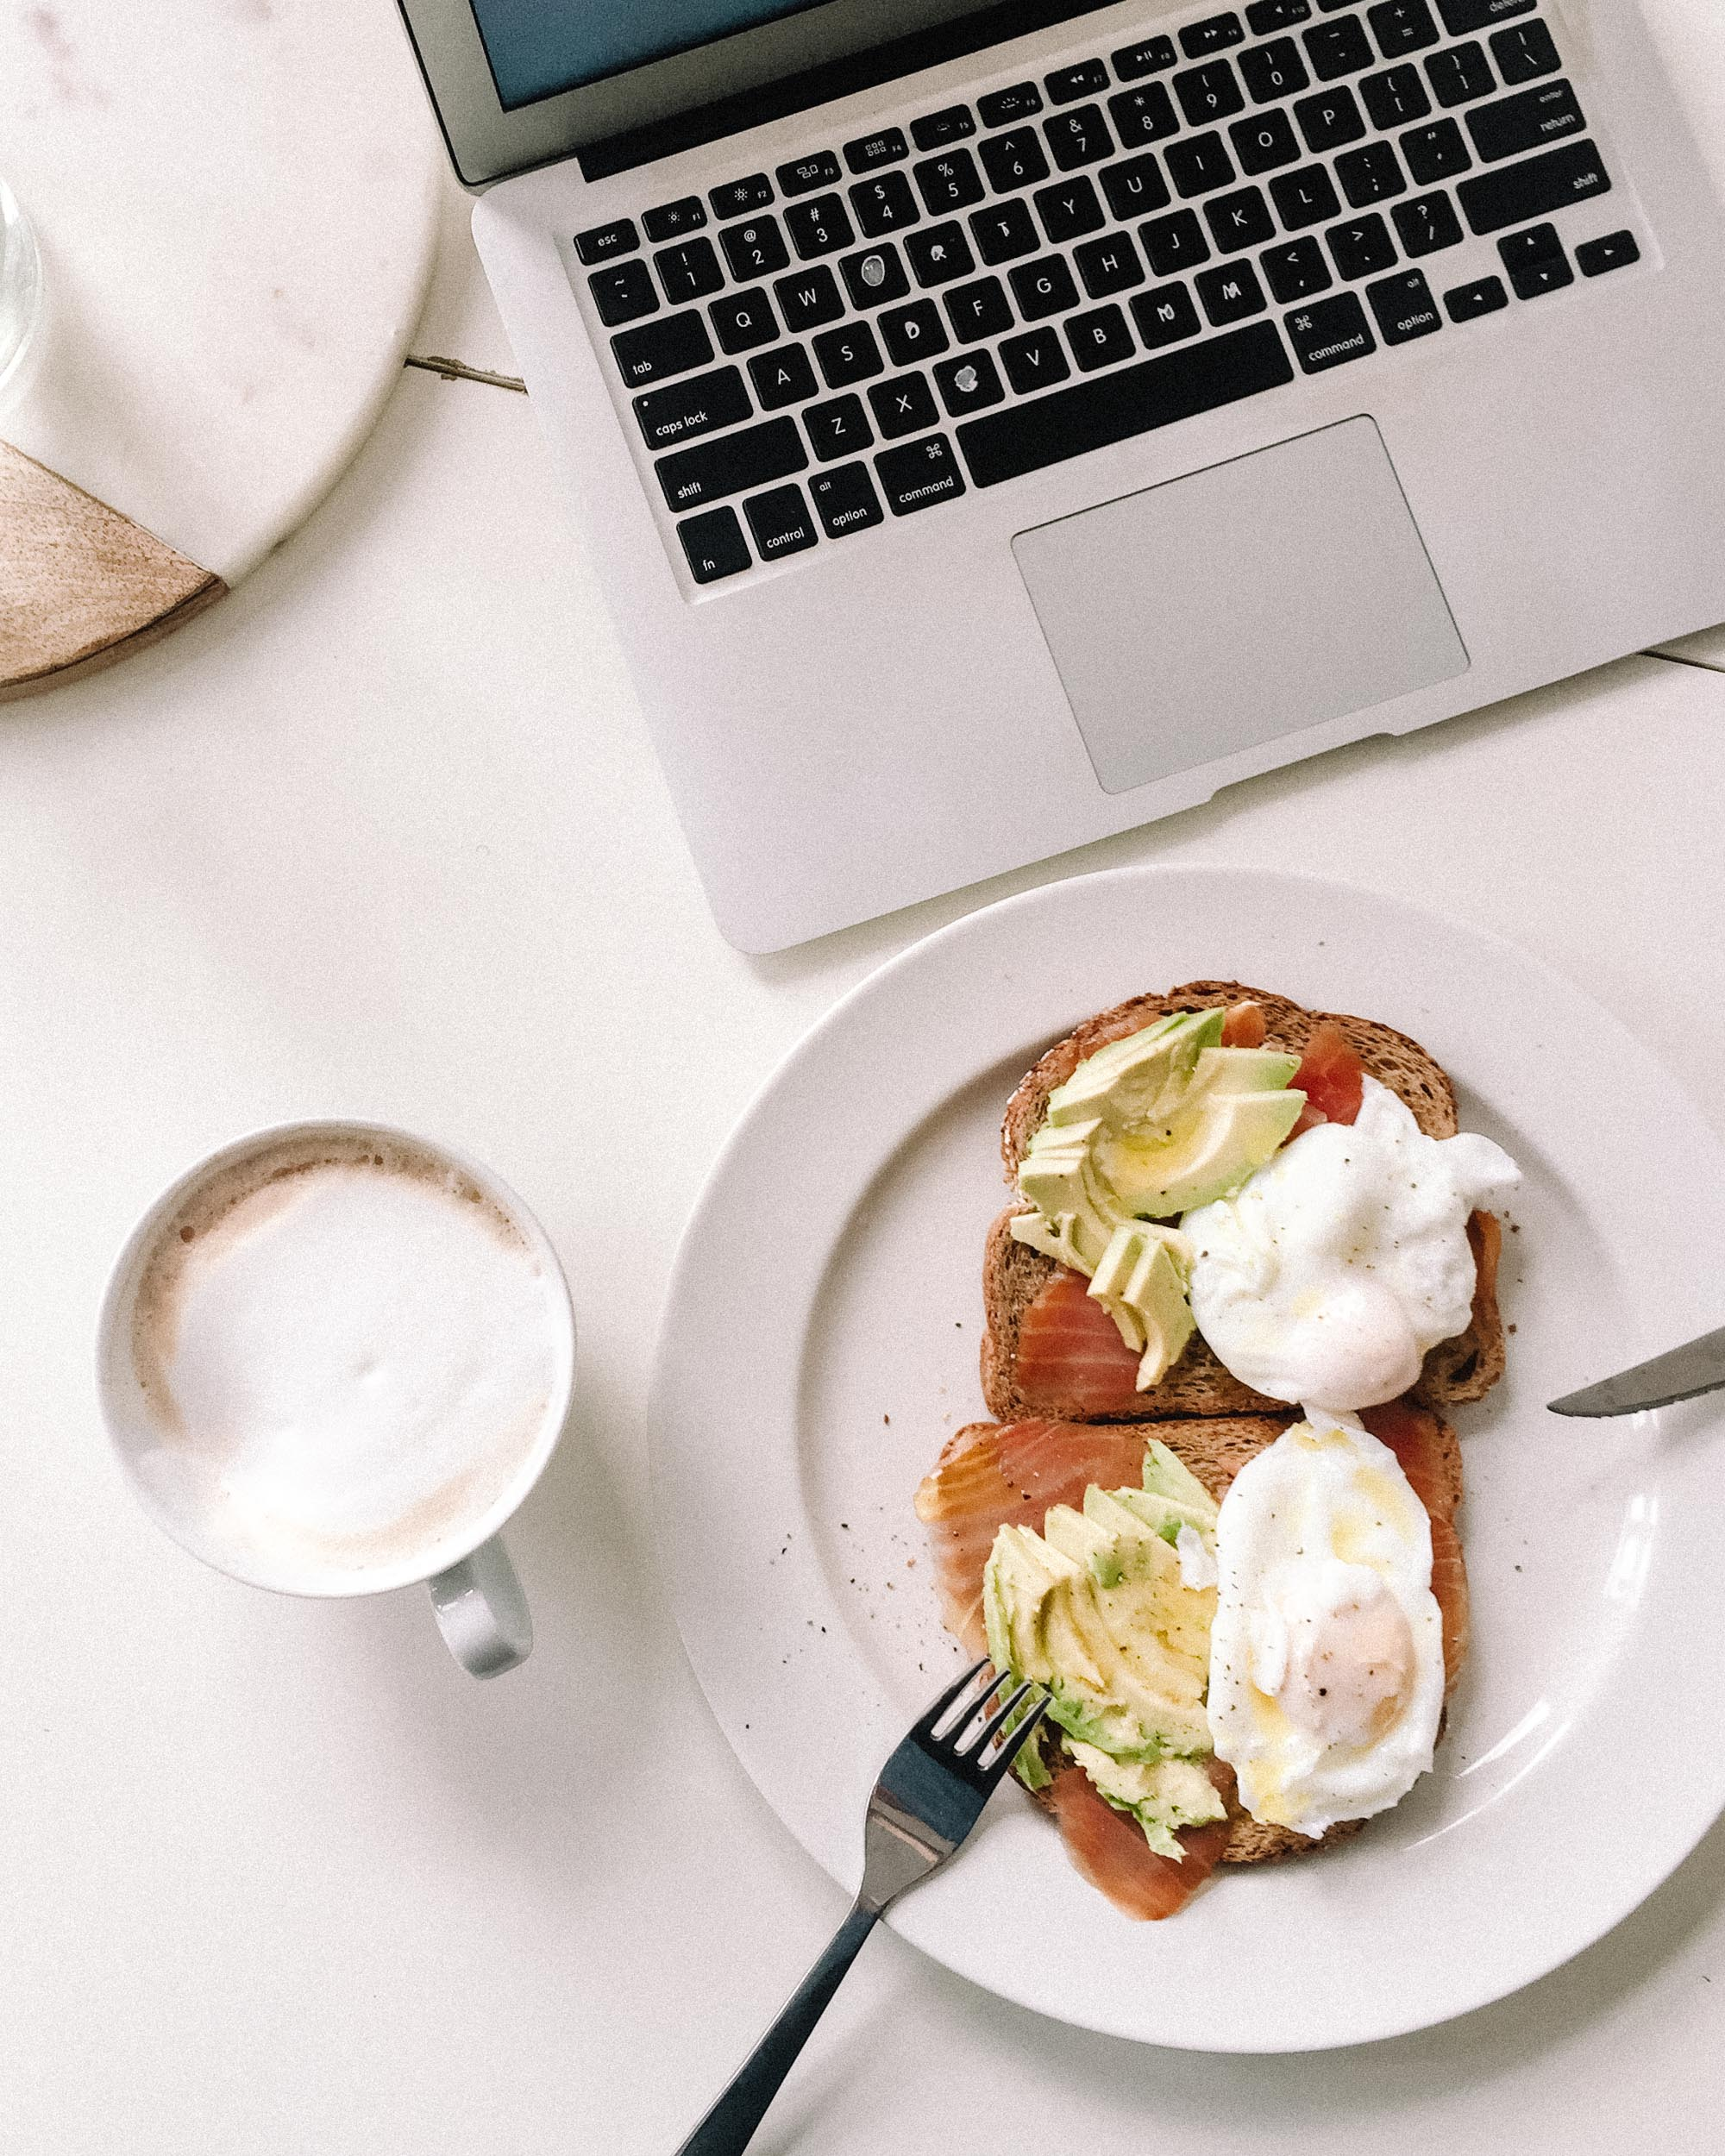 Breakfast while working from home with laptop